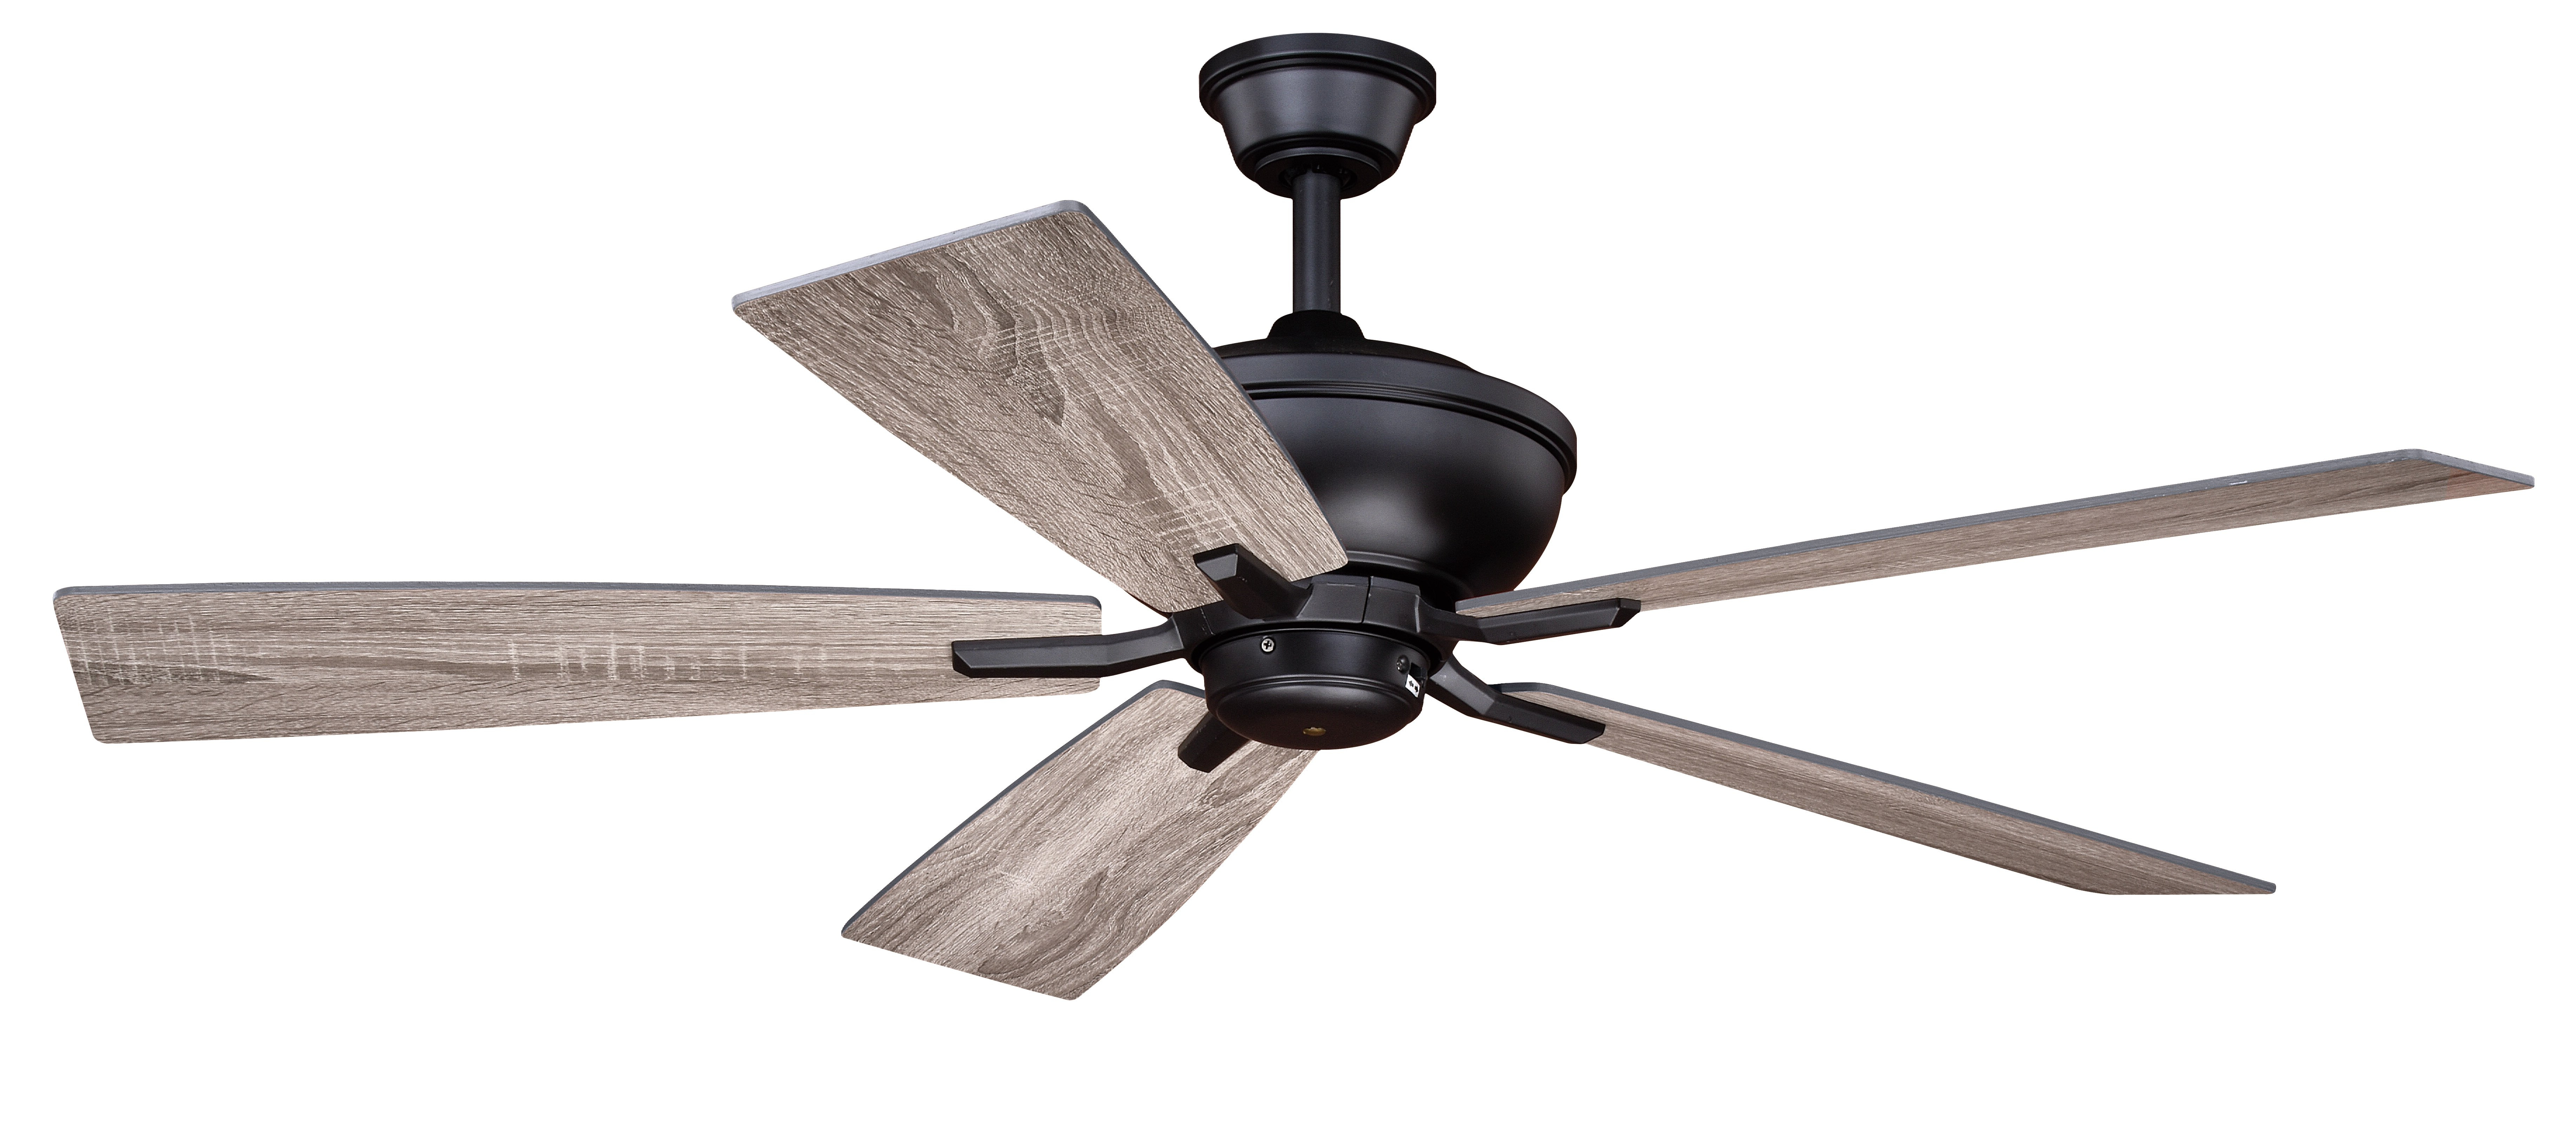 "Current 52"" Hirsch 5 Blade Ceiling Fan With Remote, Light Kit Included Intended For Mattias 5 Blade Ceiling Fans (View 5 of 20)"